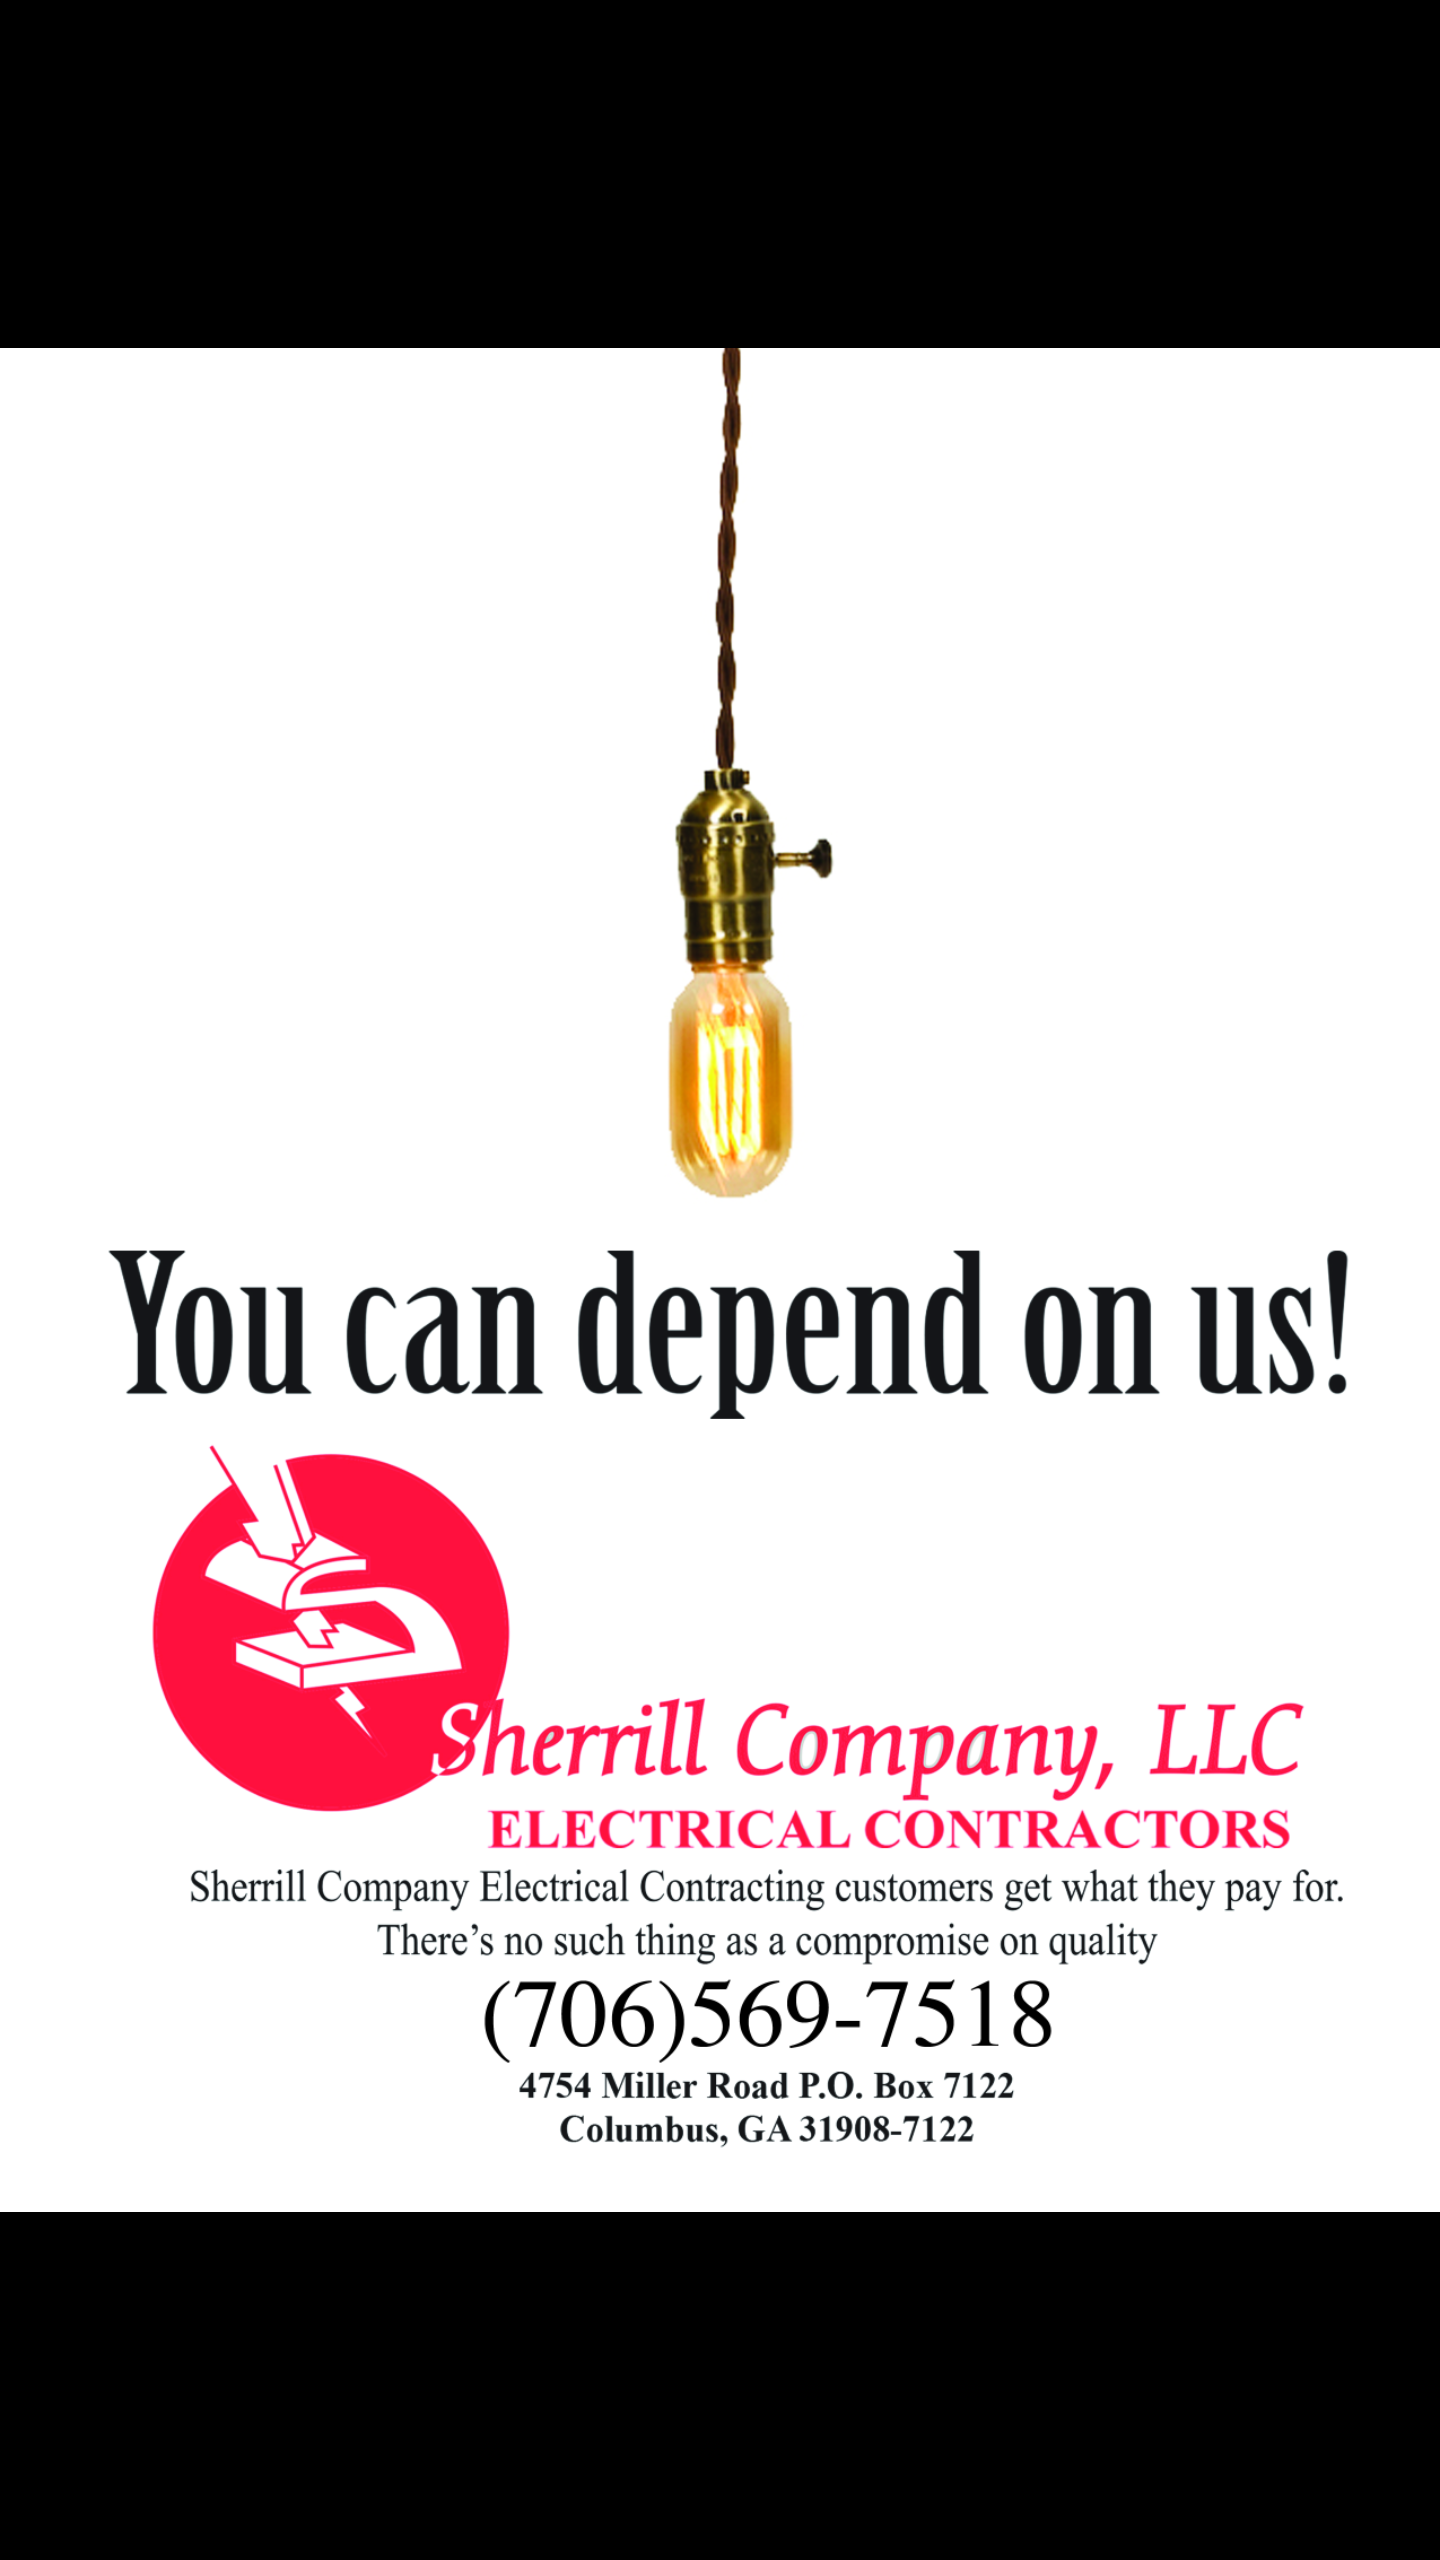 You can depend on us!